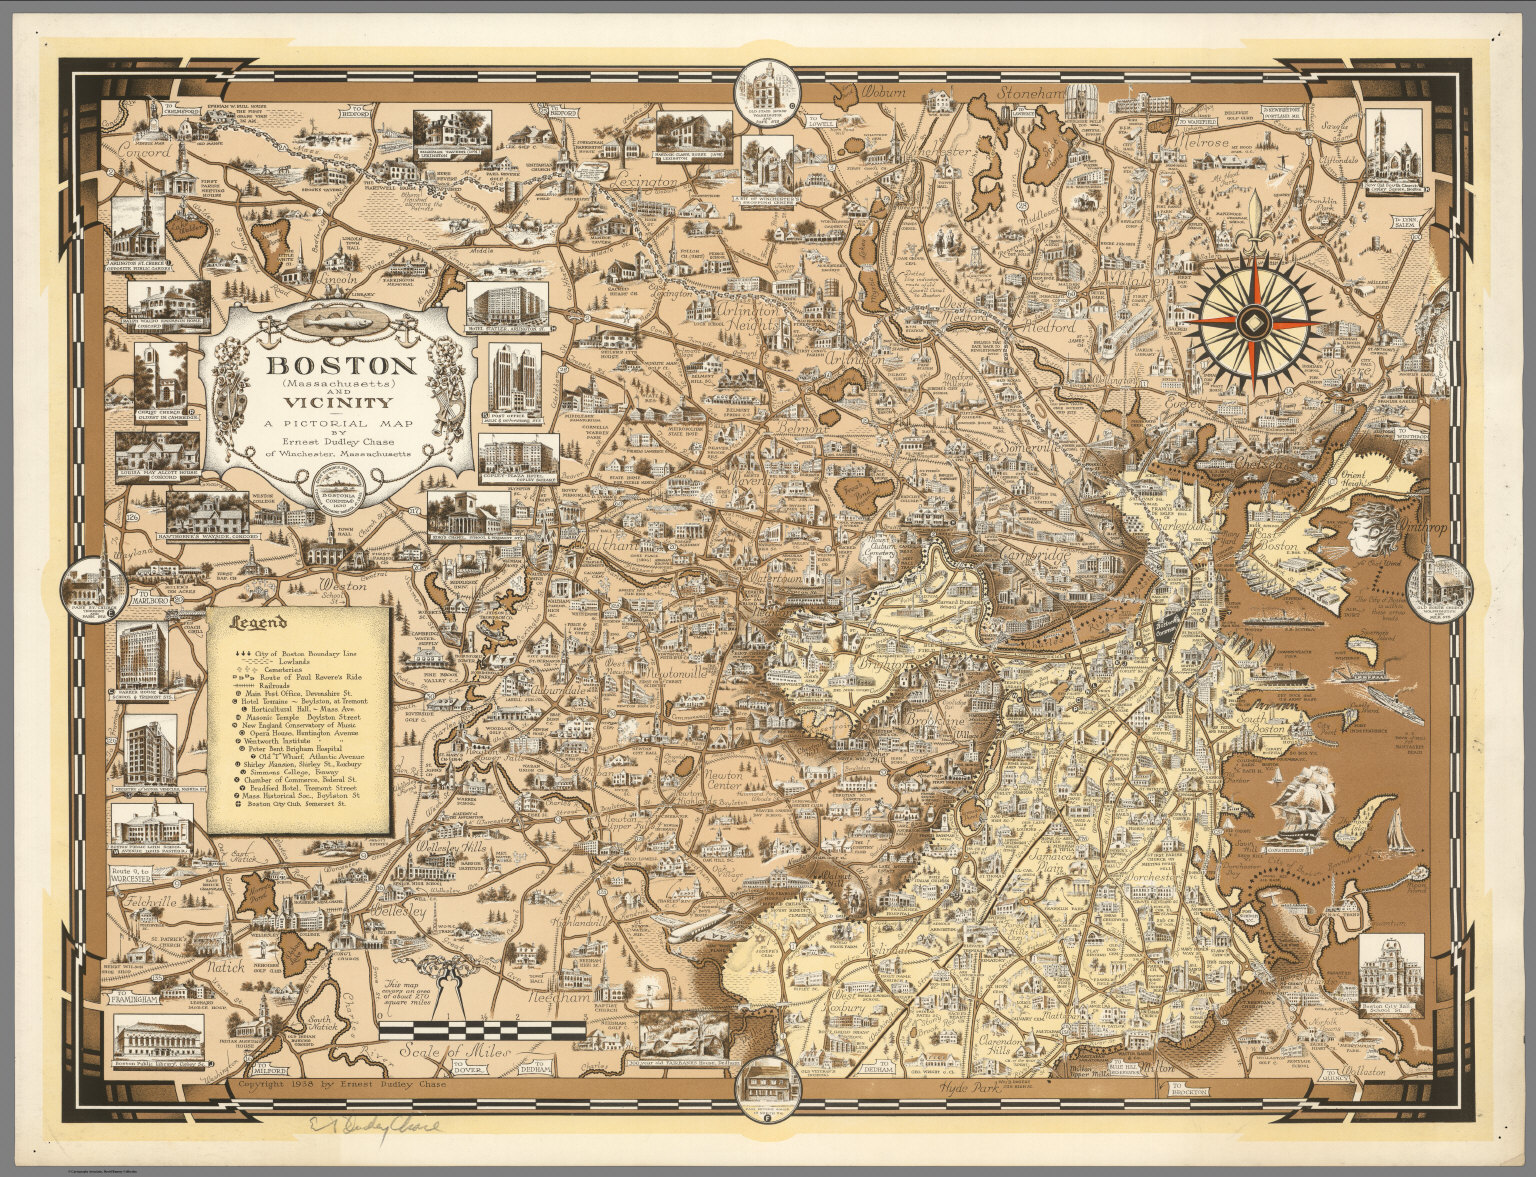 Boston Massachusetts And Vicinity A Pictorial Map David - Map of boston vicinity